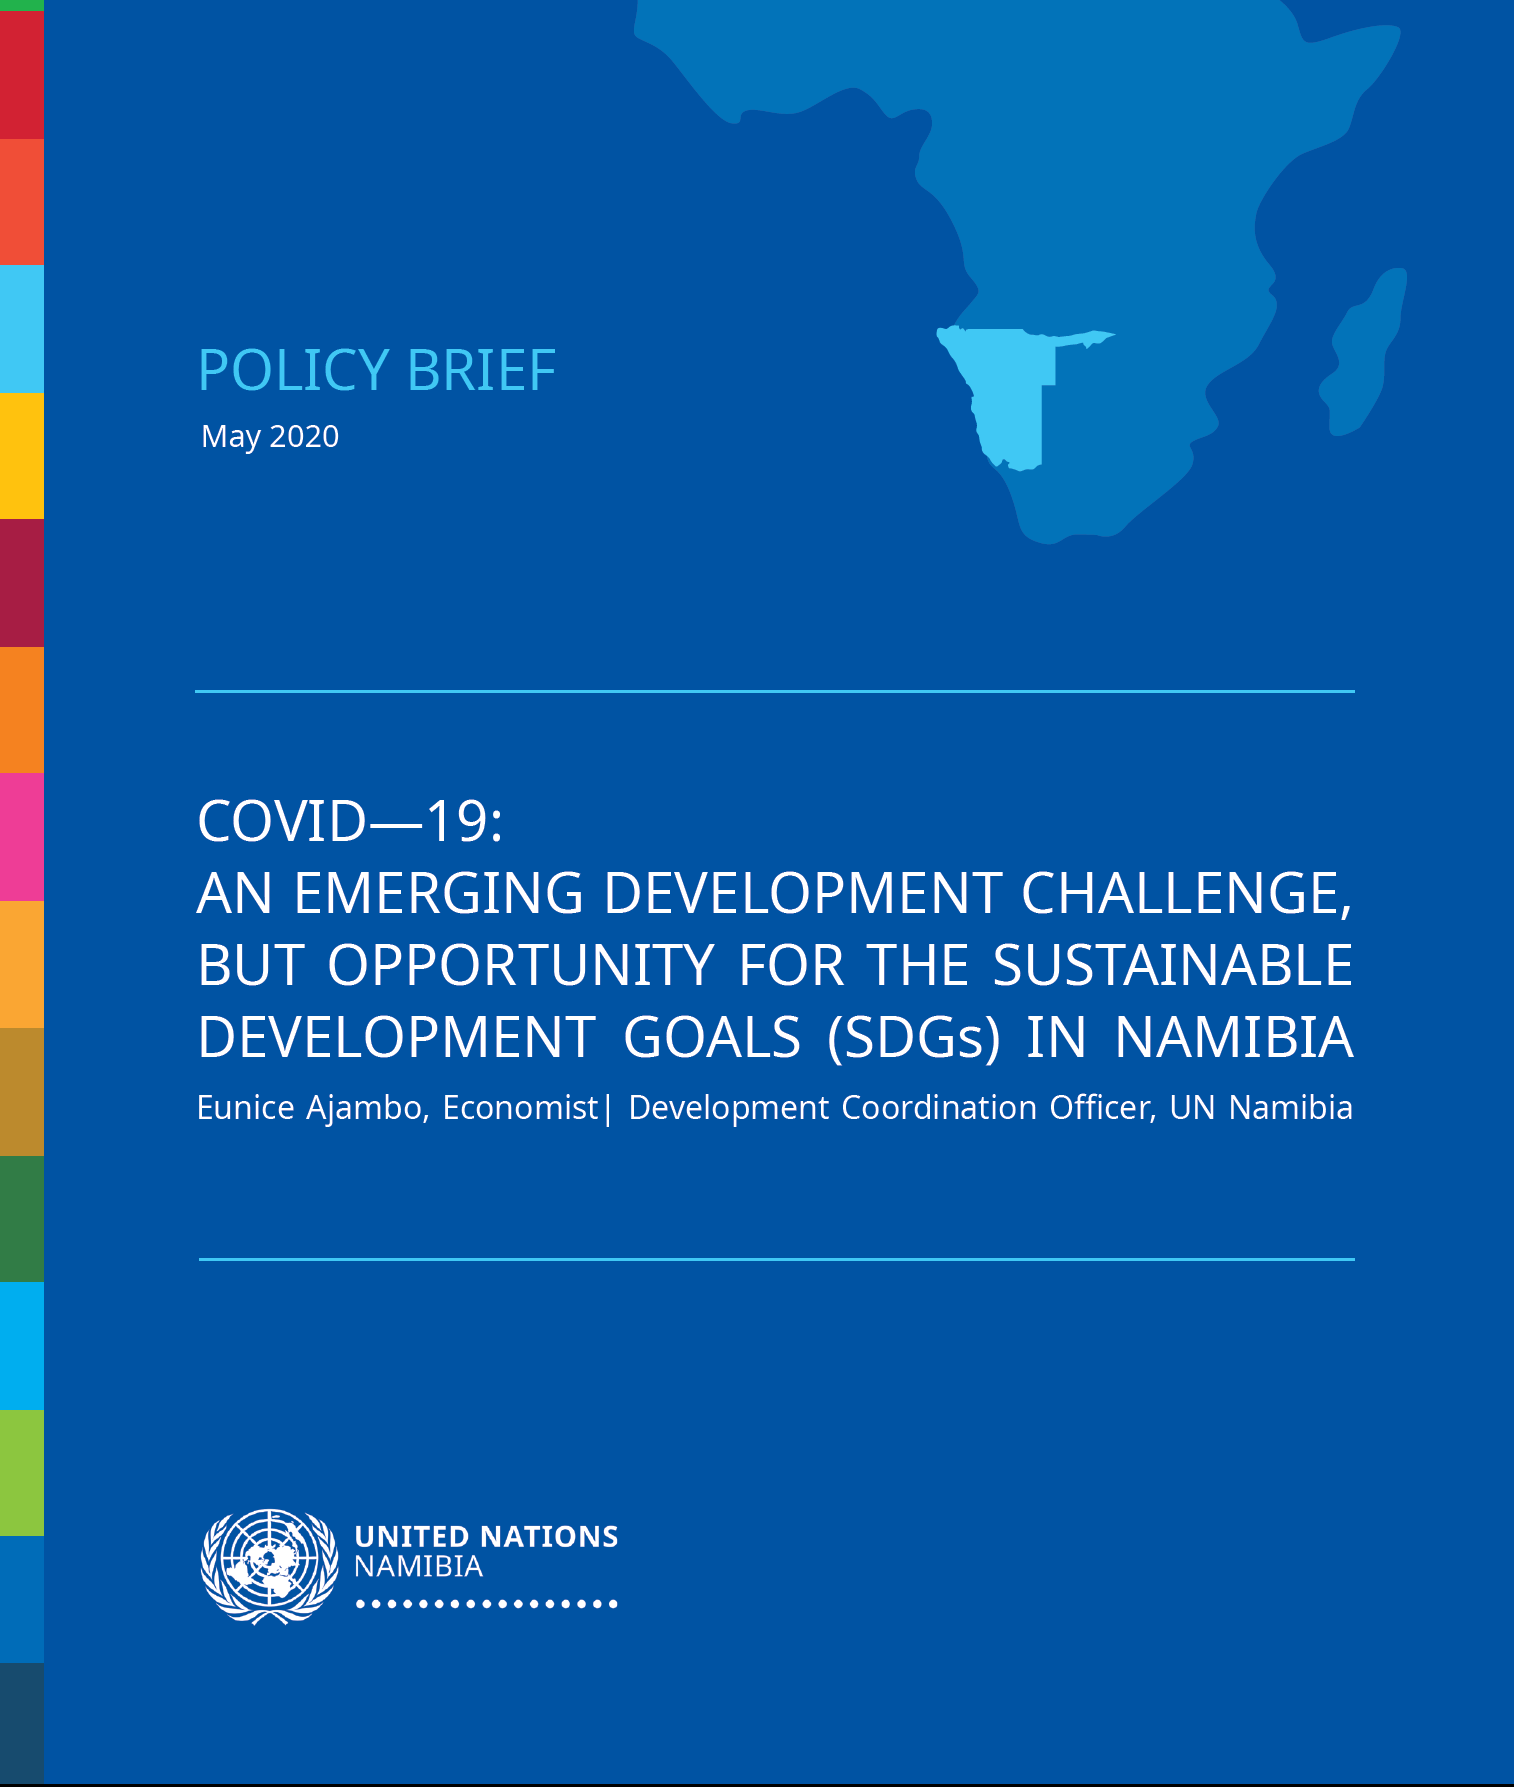 """The United Nations (UN) Namibia launched a policy brief titled: """"COVID-19: An Emerging Development Challenge, but opportunity for the Sustainable Development Goals (SDGs) in Namibia."""""""